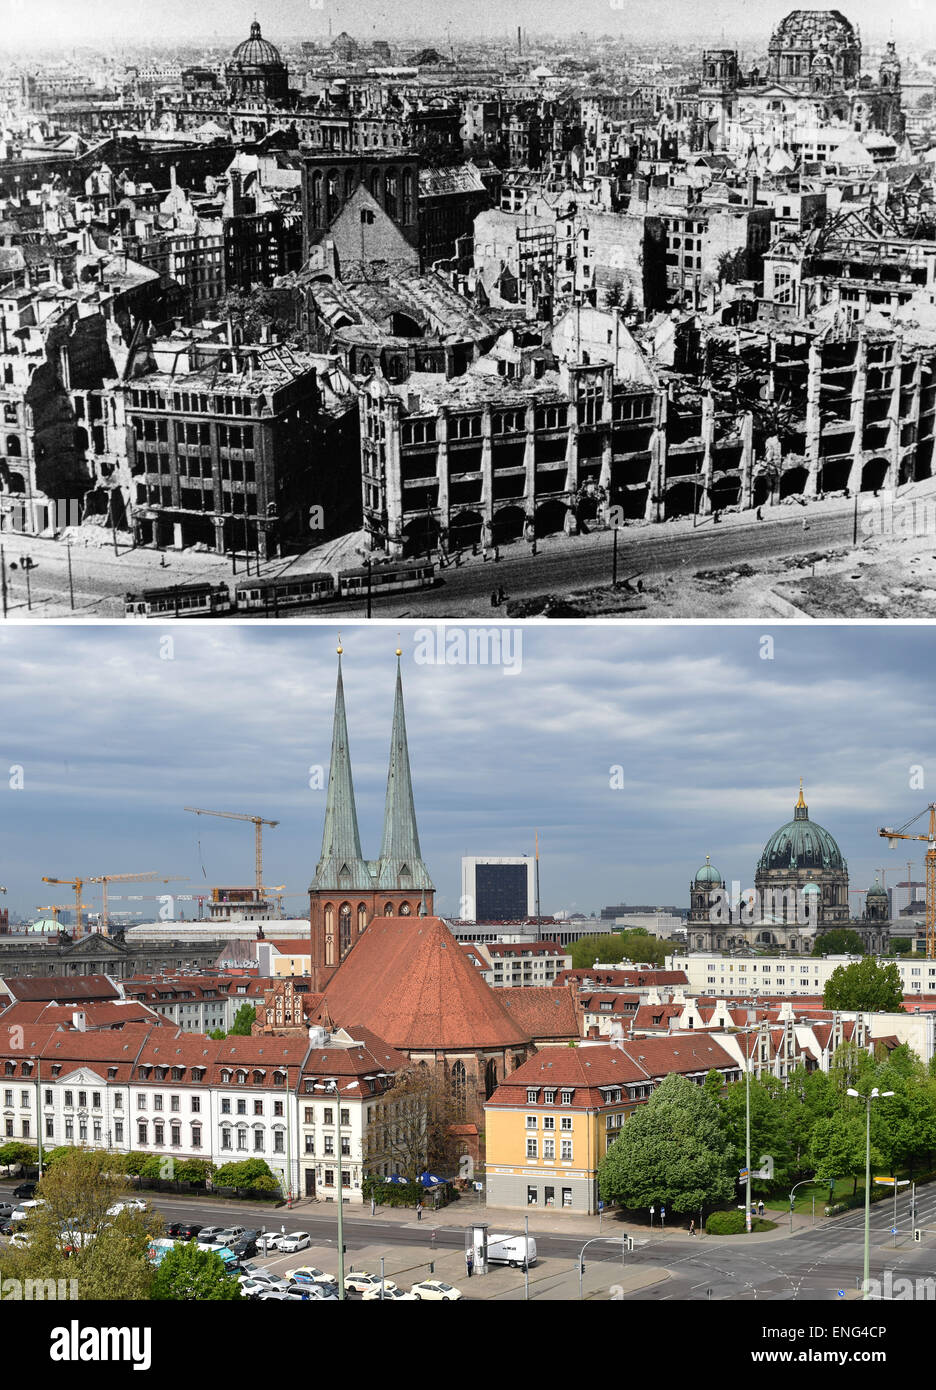 Berlin, Germany. 5th May, 2015. The upper aerial image shows the ruins of the Nikolaiviertel with the Saint Nicholas Stock Photo